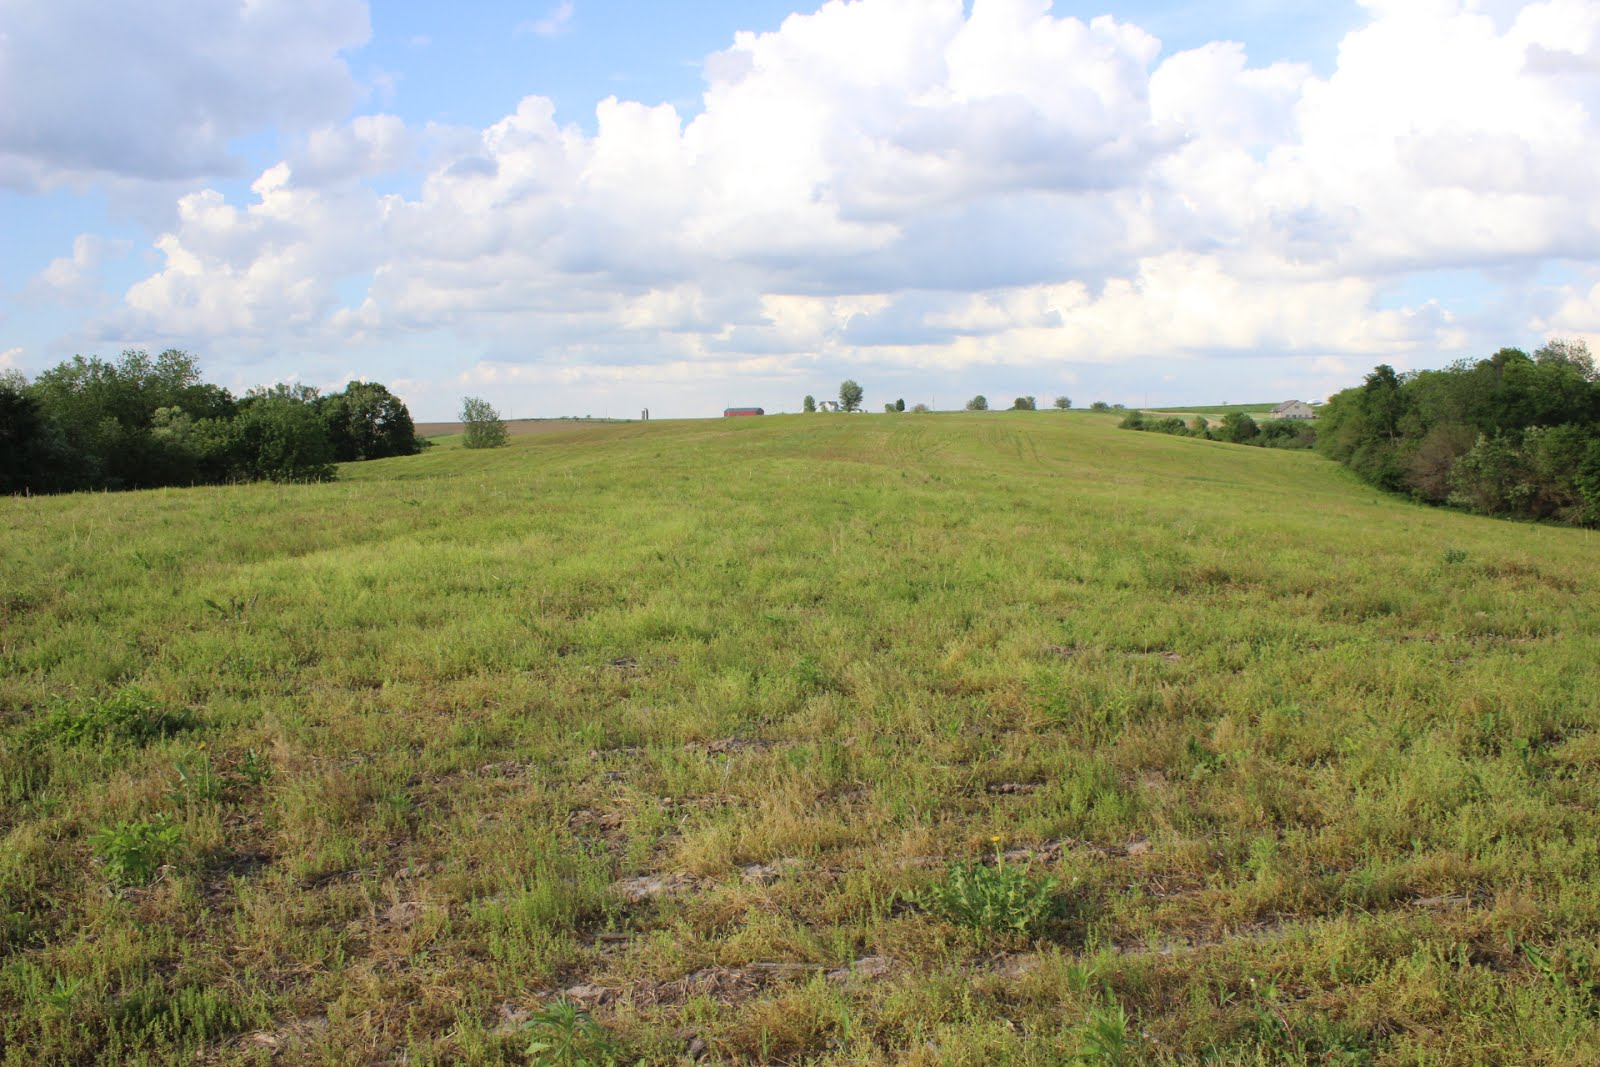 183.59 Acres, Section 6, Washington Township, Jackson County SOLD